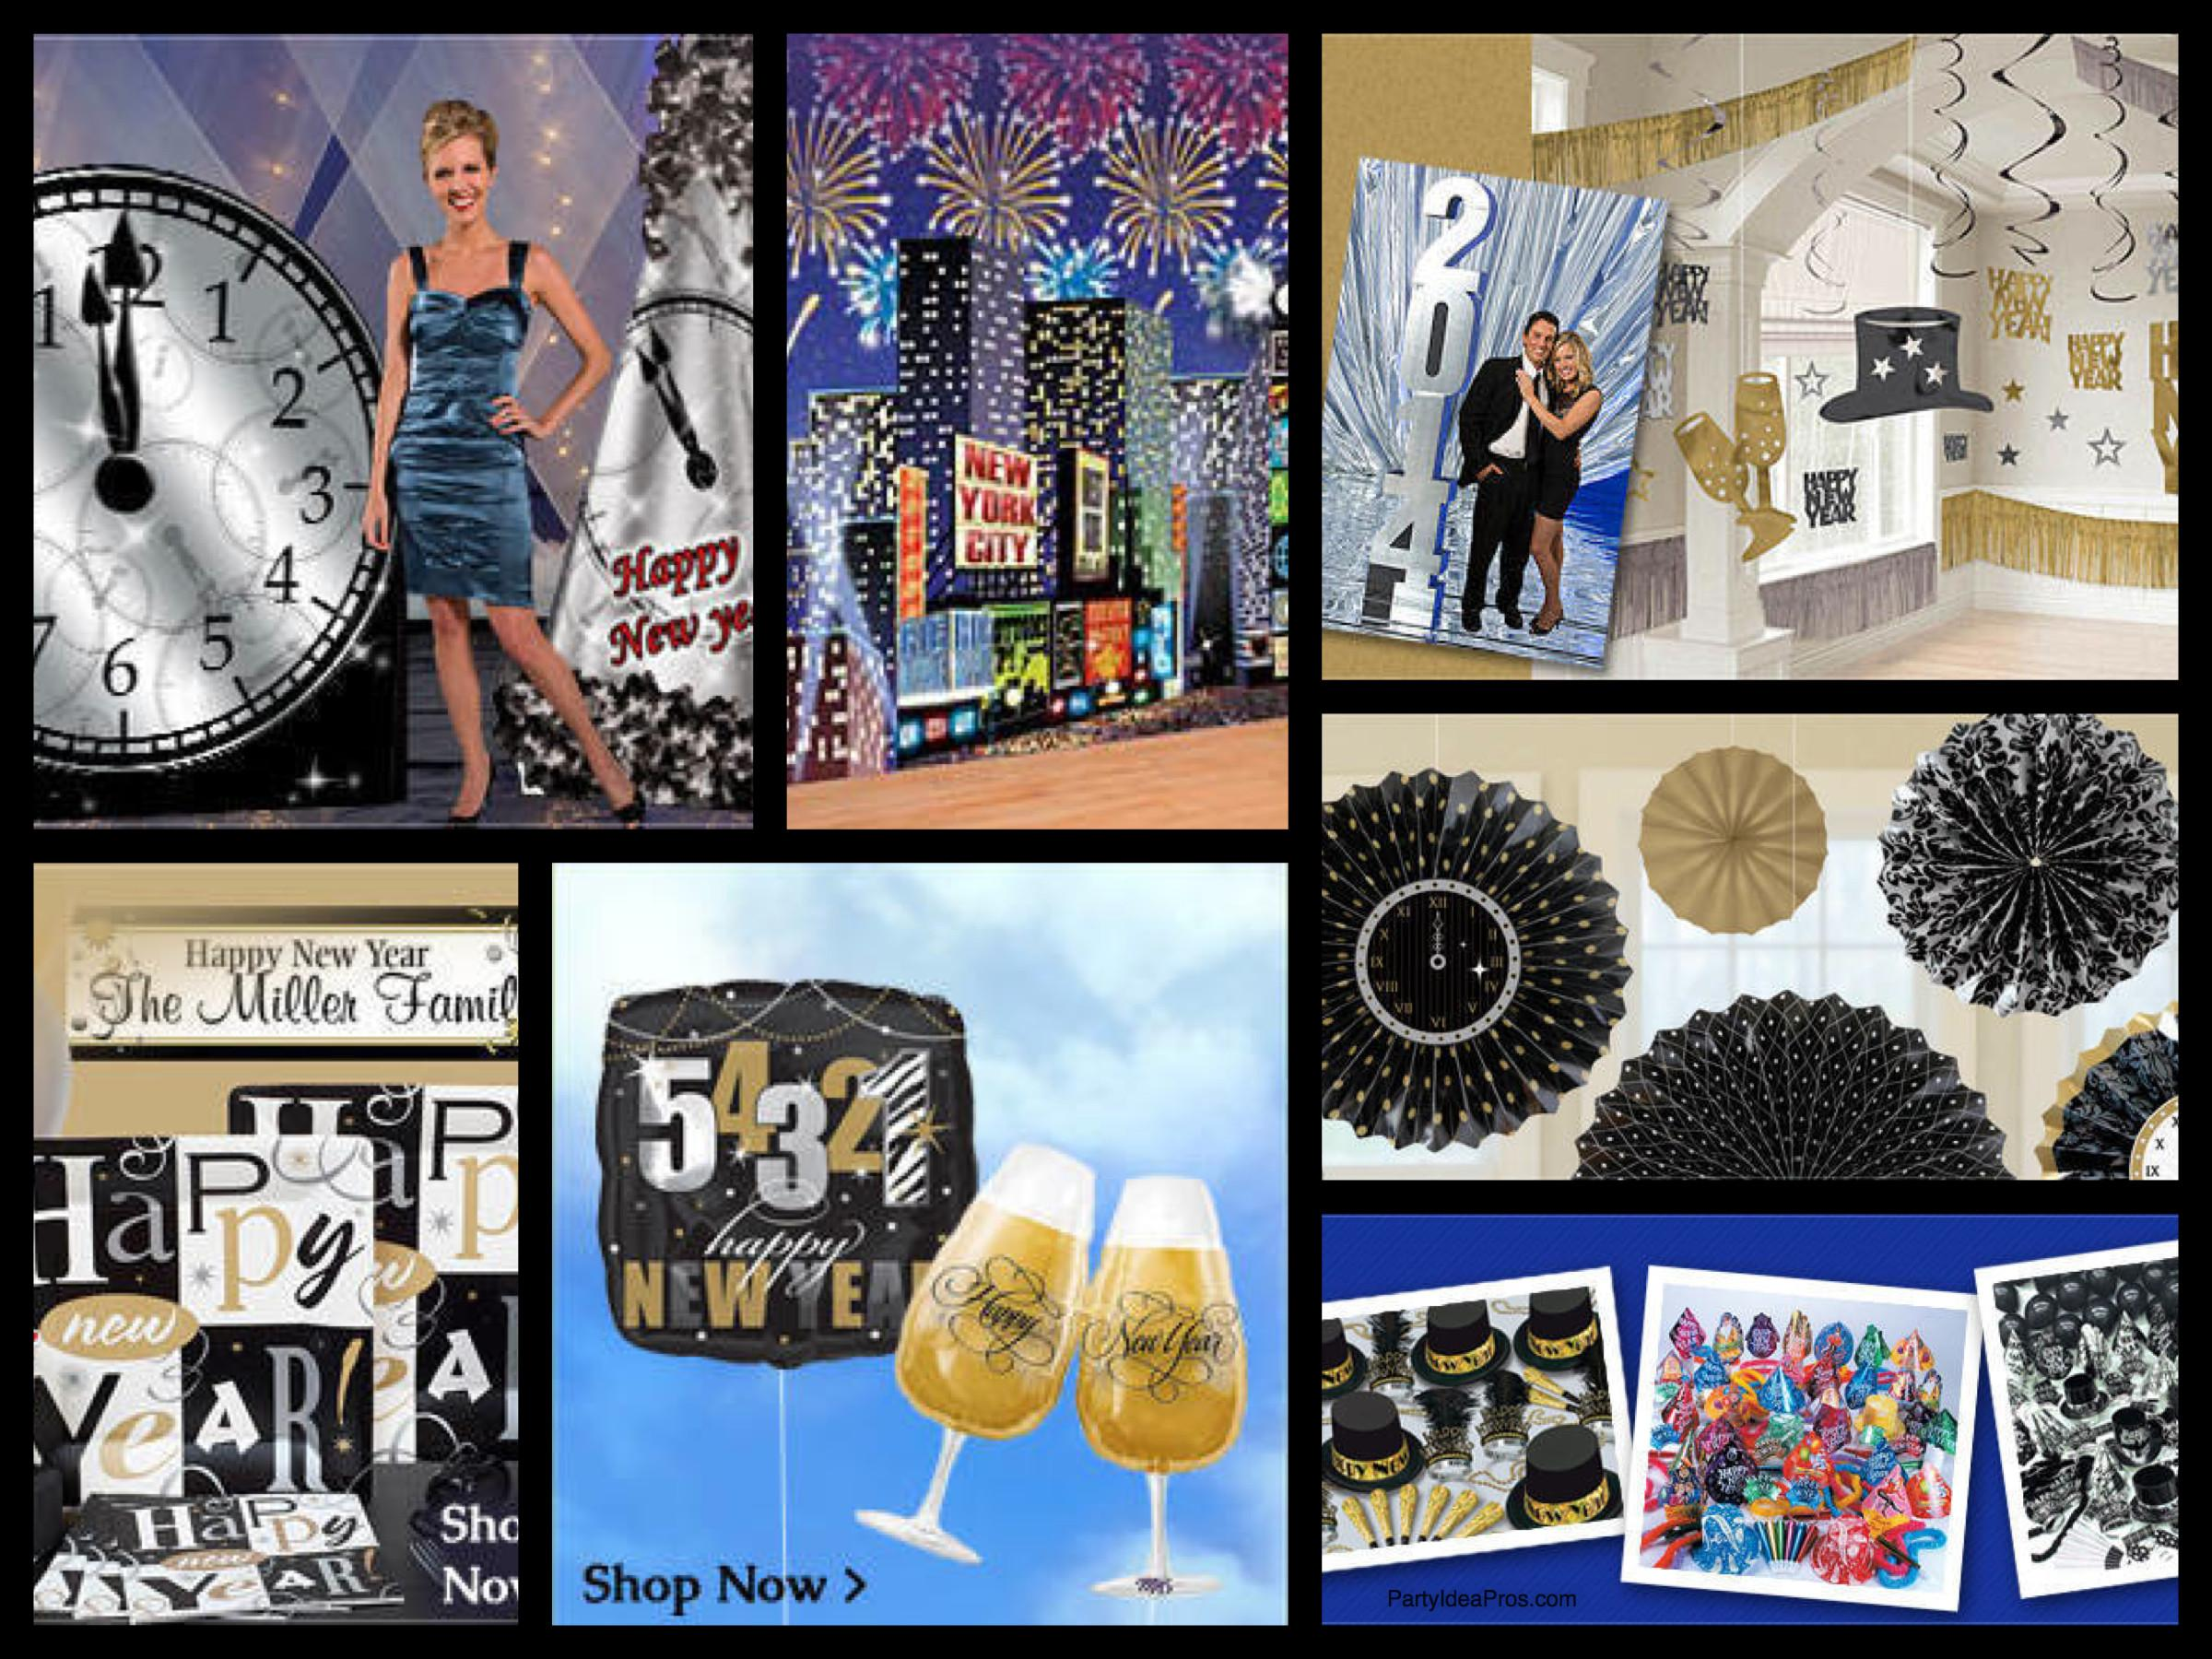 New Years Eve Decorations Party Supplies Partyideapros